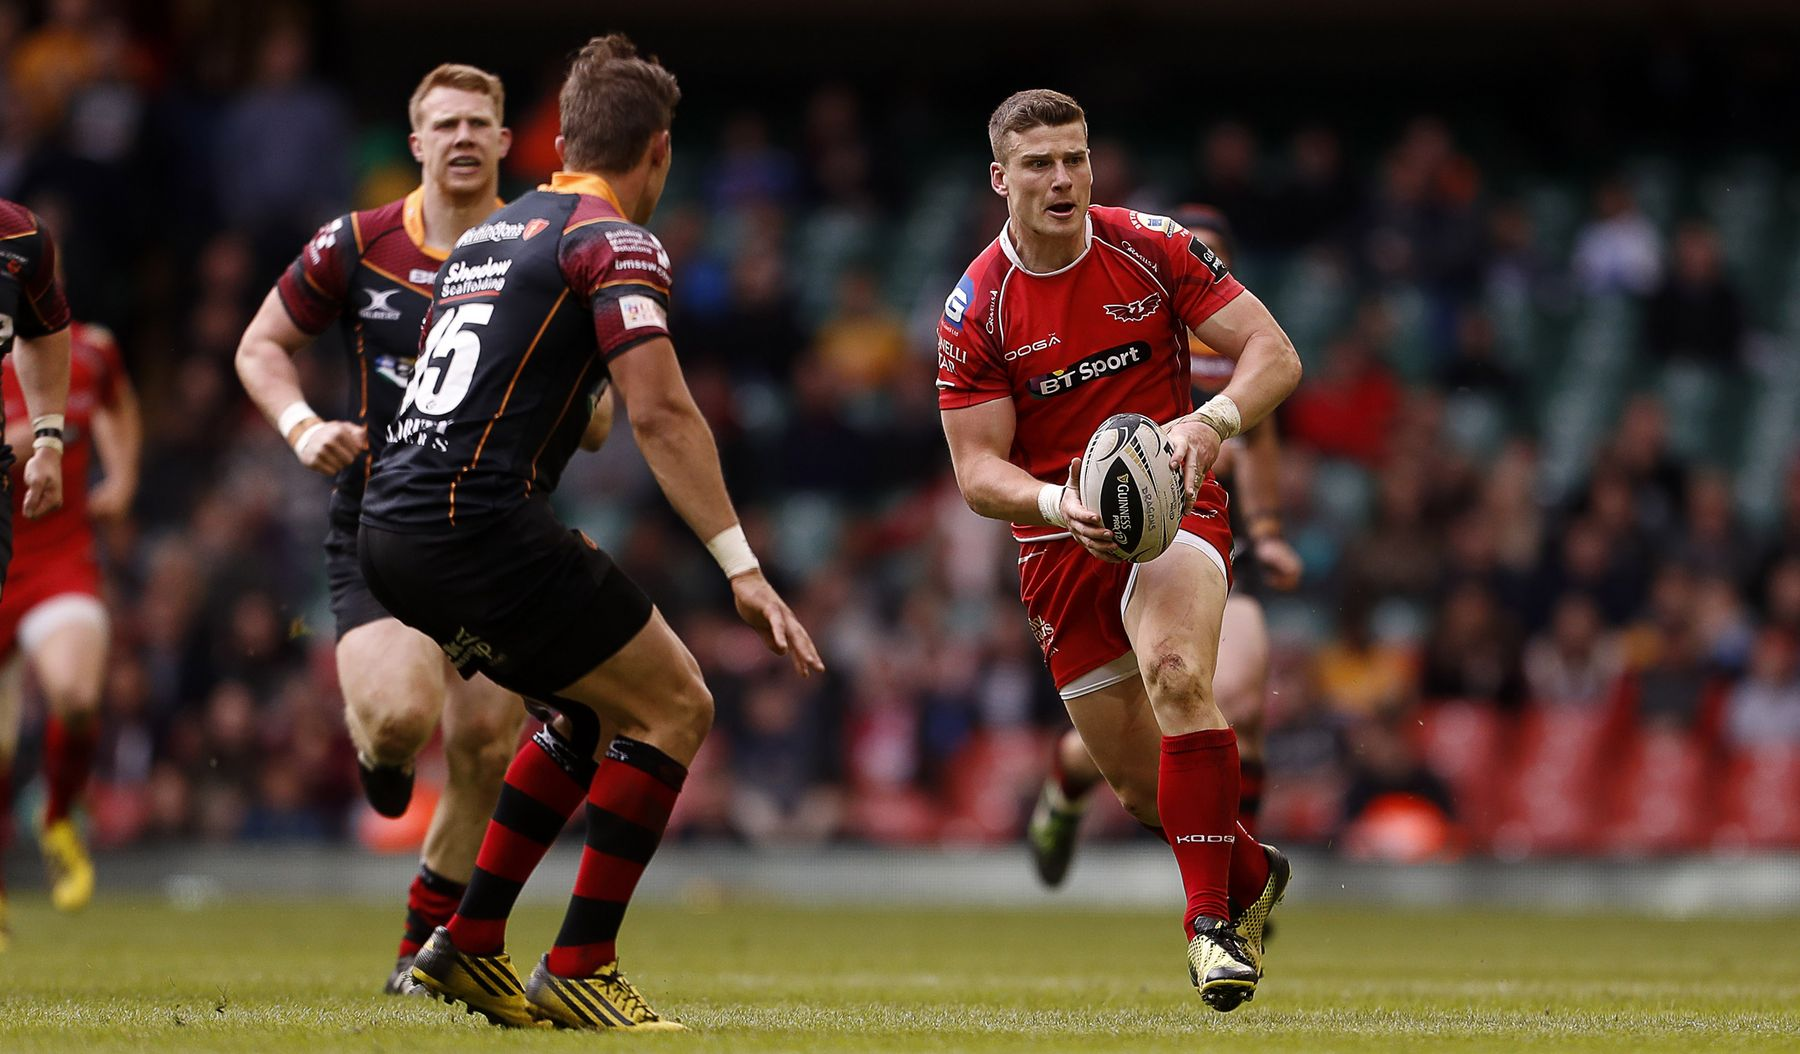 Anglo-Welsh Cup returns with Regional battles